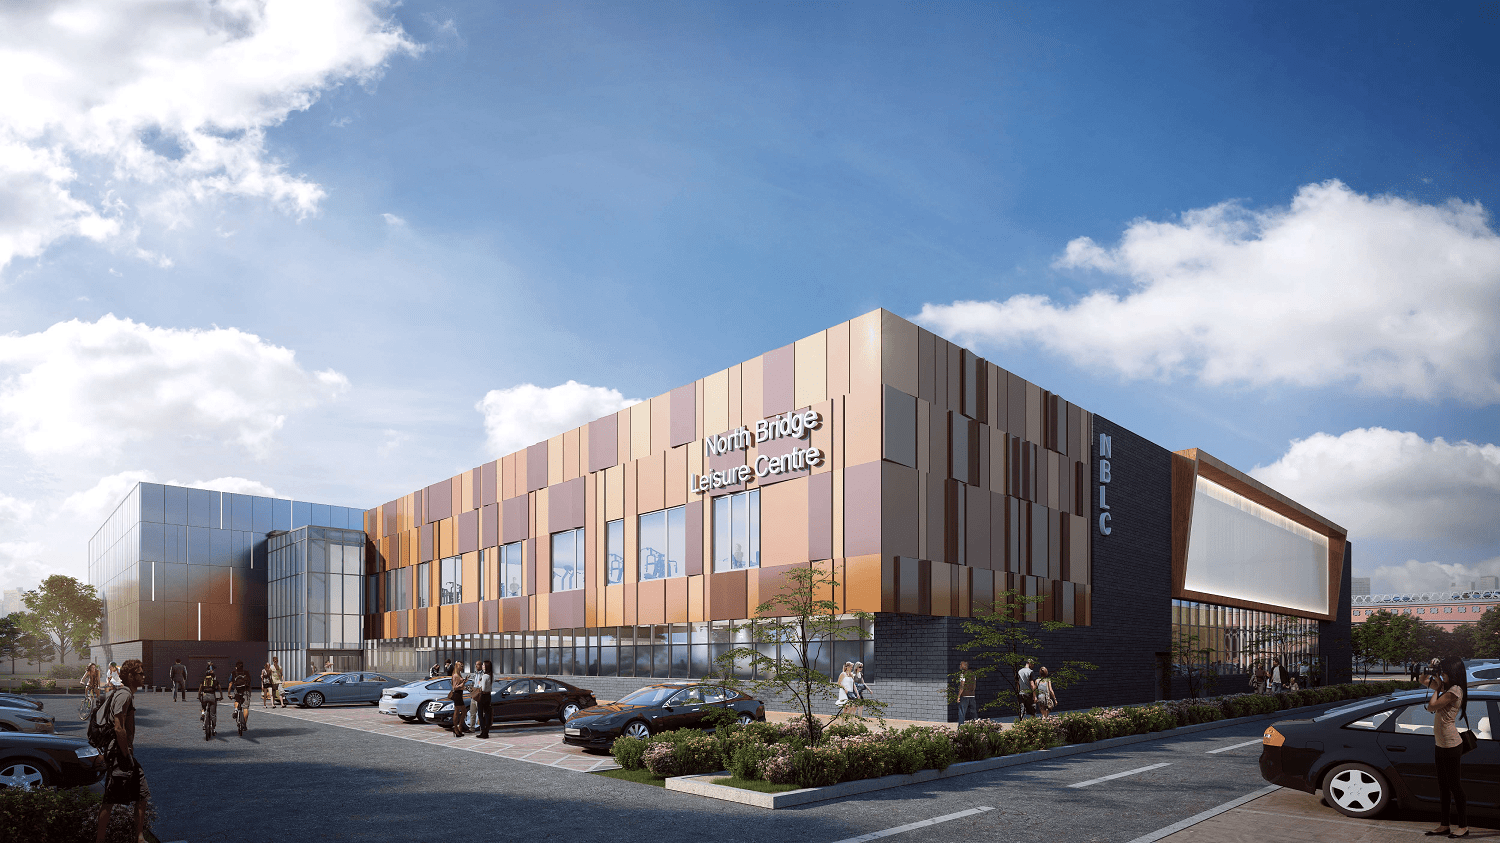 View of exterior of proposed Halifax Leisure Centre